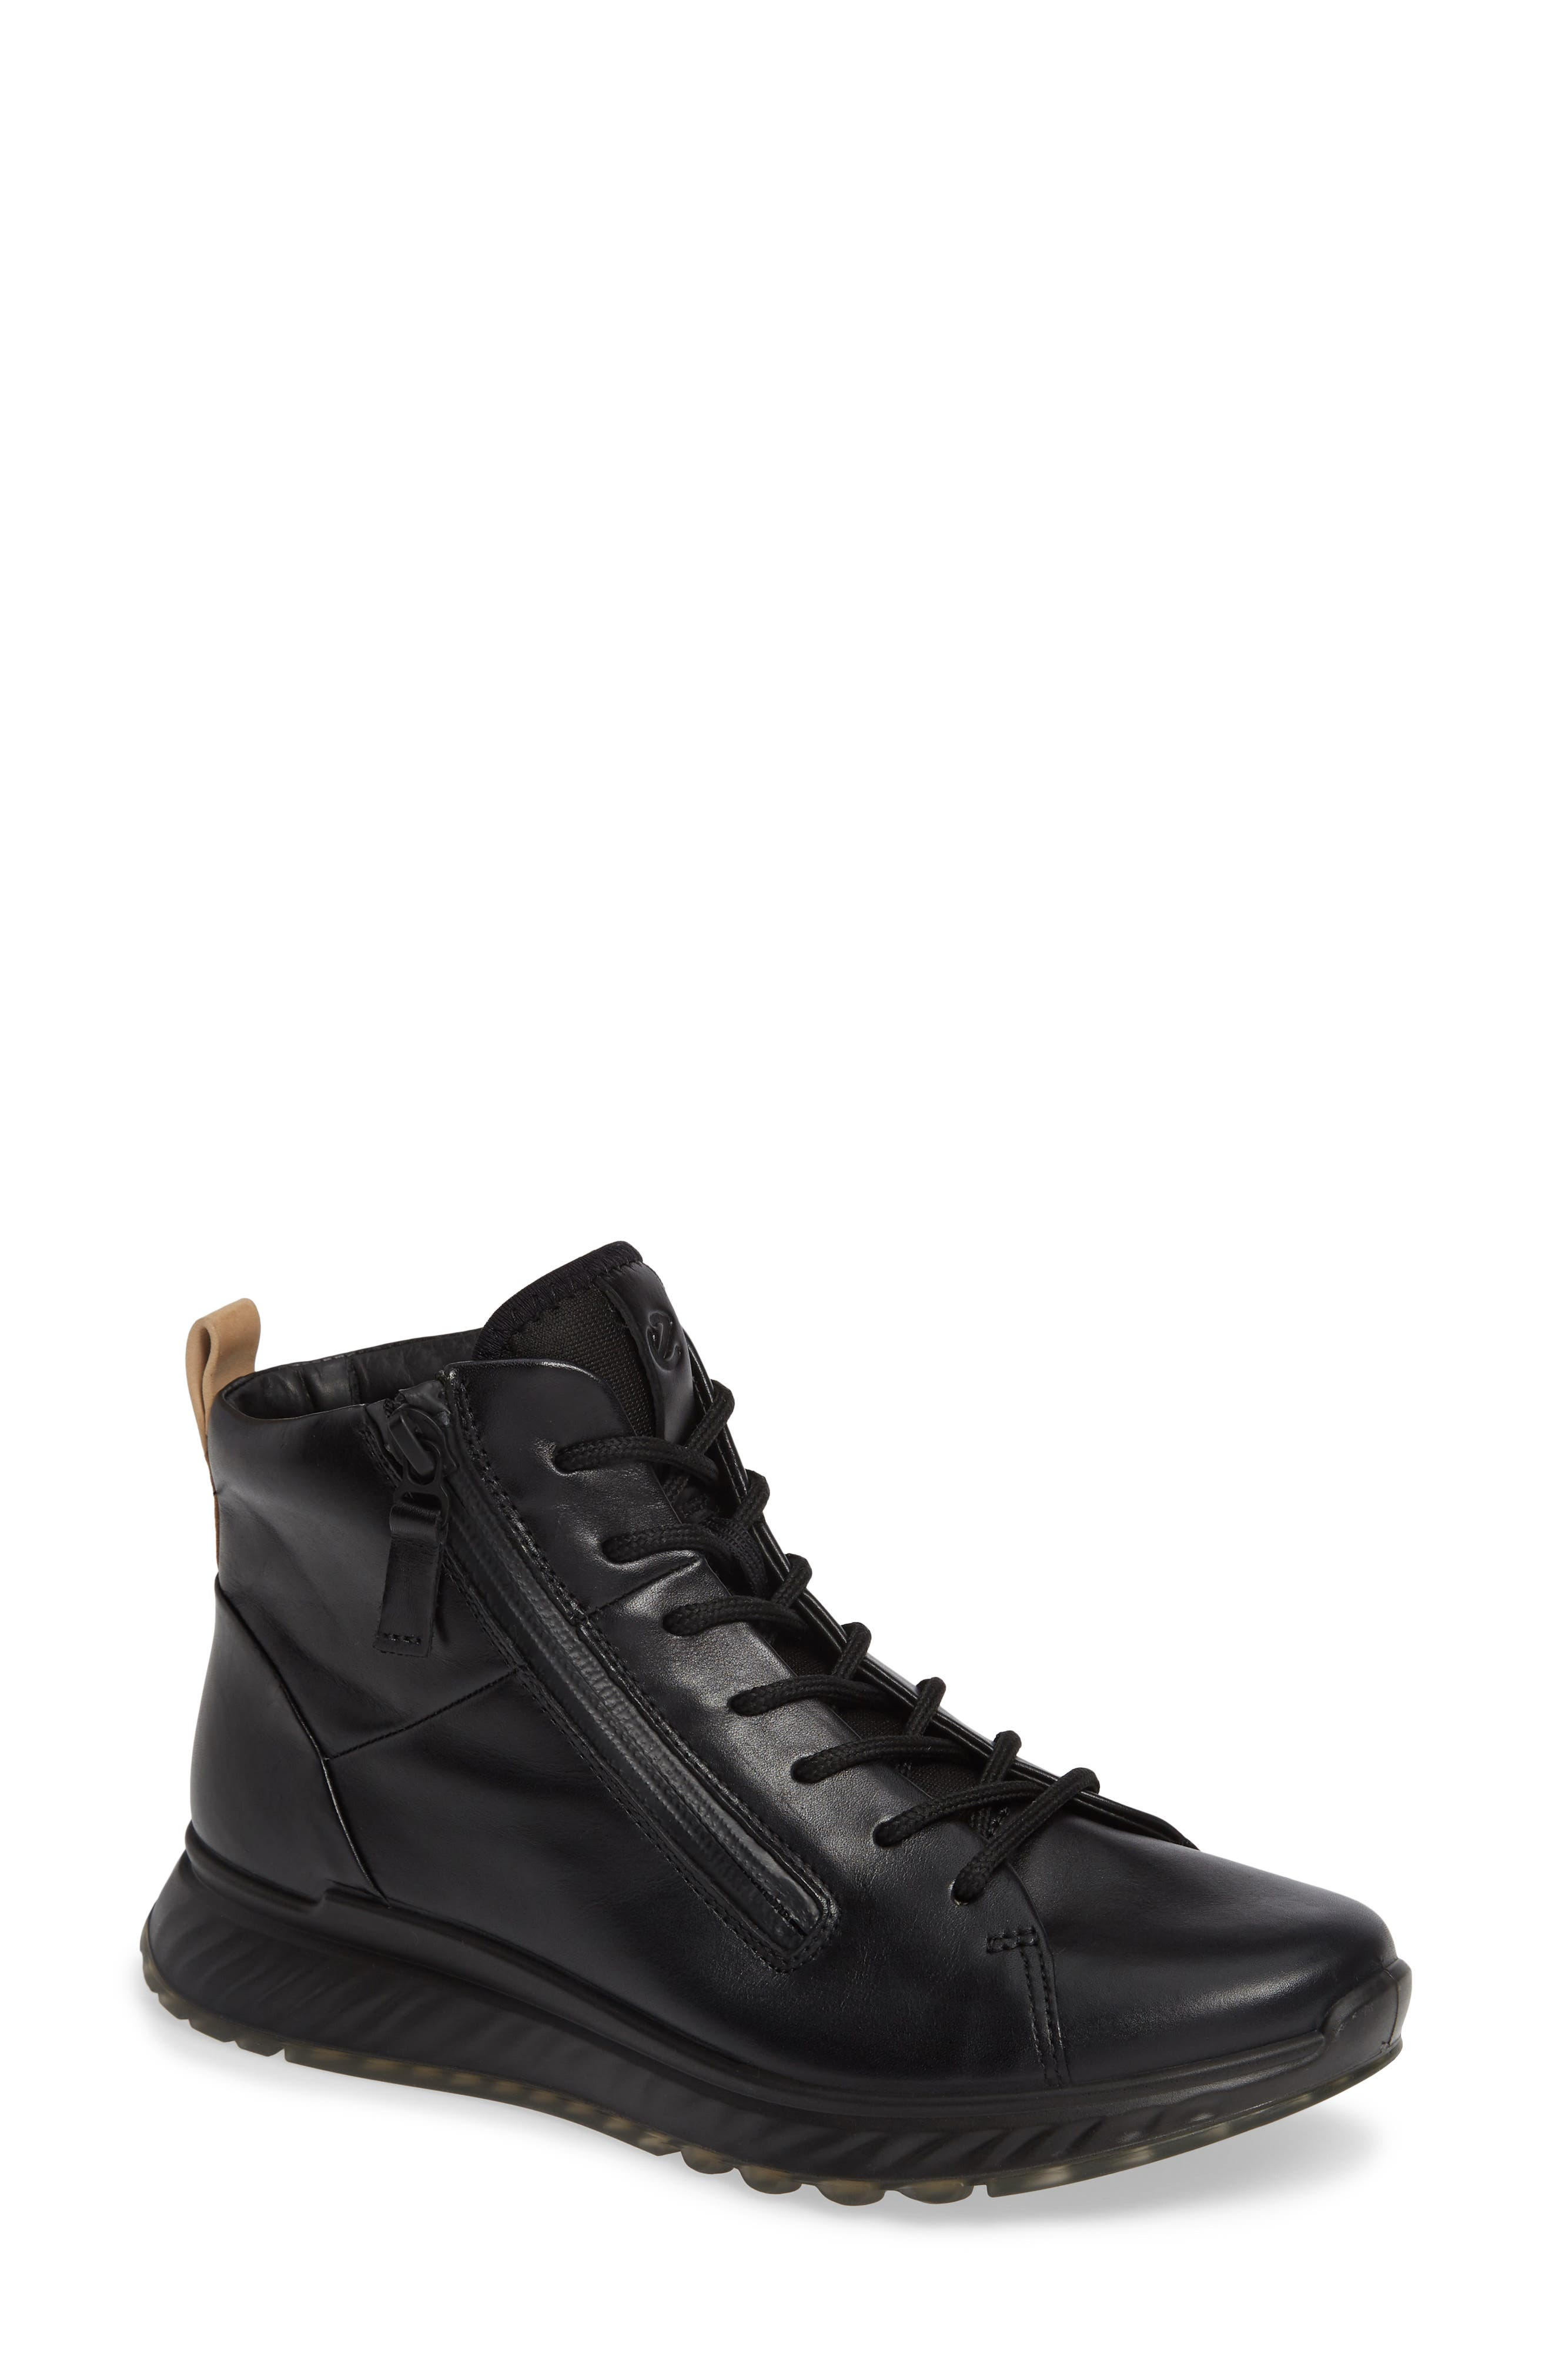 ST1 High Top Sneaker,                             Main thumbnail 1, color,                             BLACK LEATHER